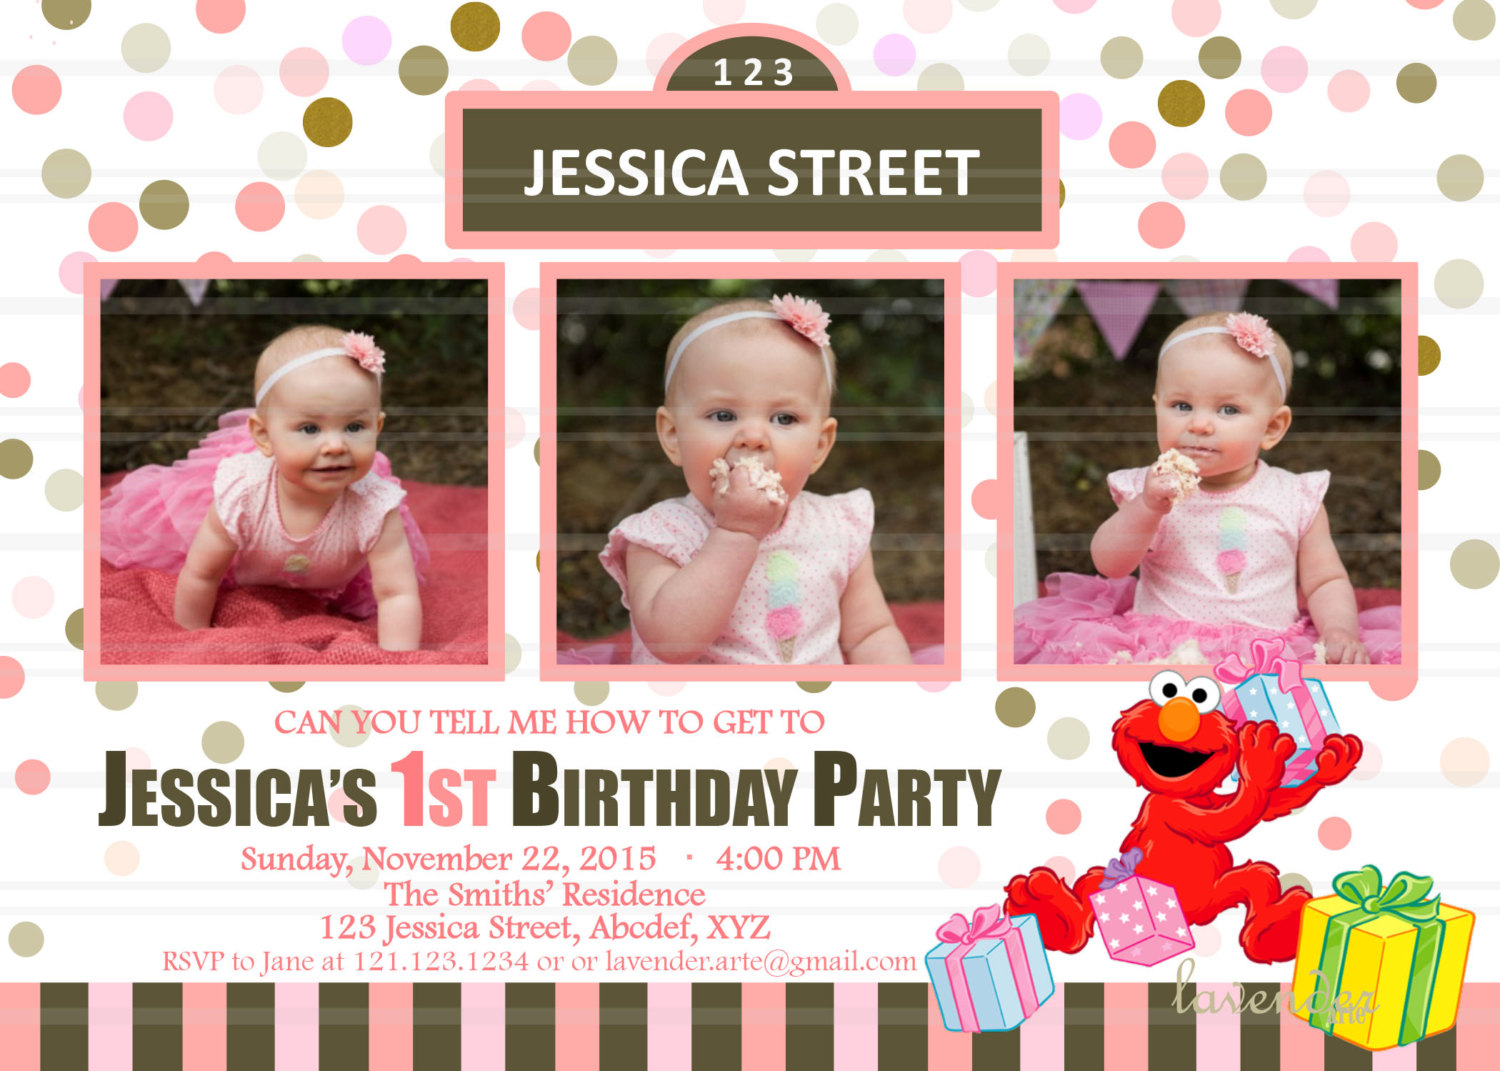 Elmo 1st birthday party ideas birthday party sesamestreet - Elmo 1st Birthday Invitation